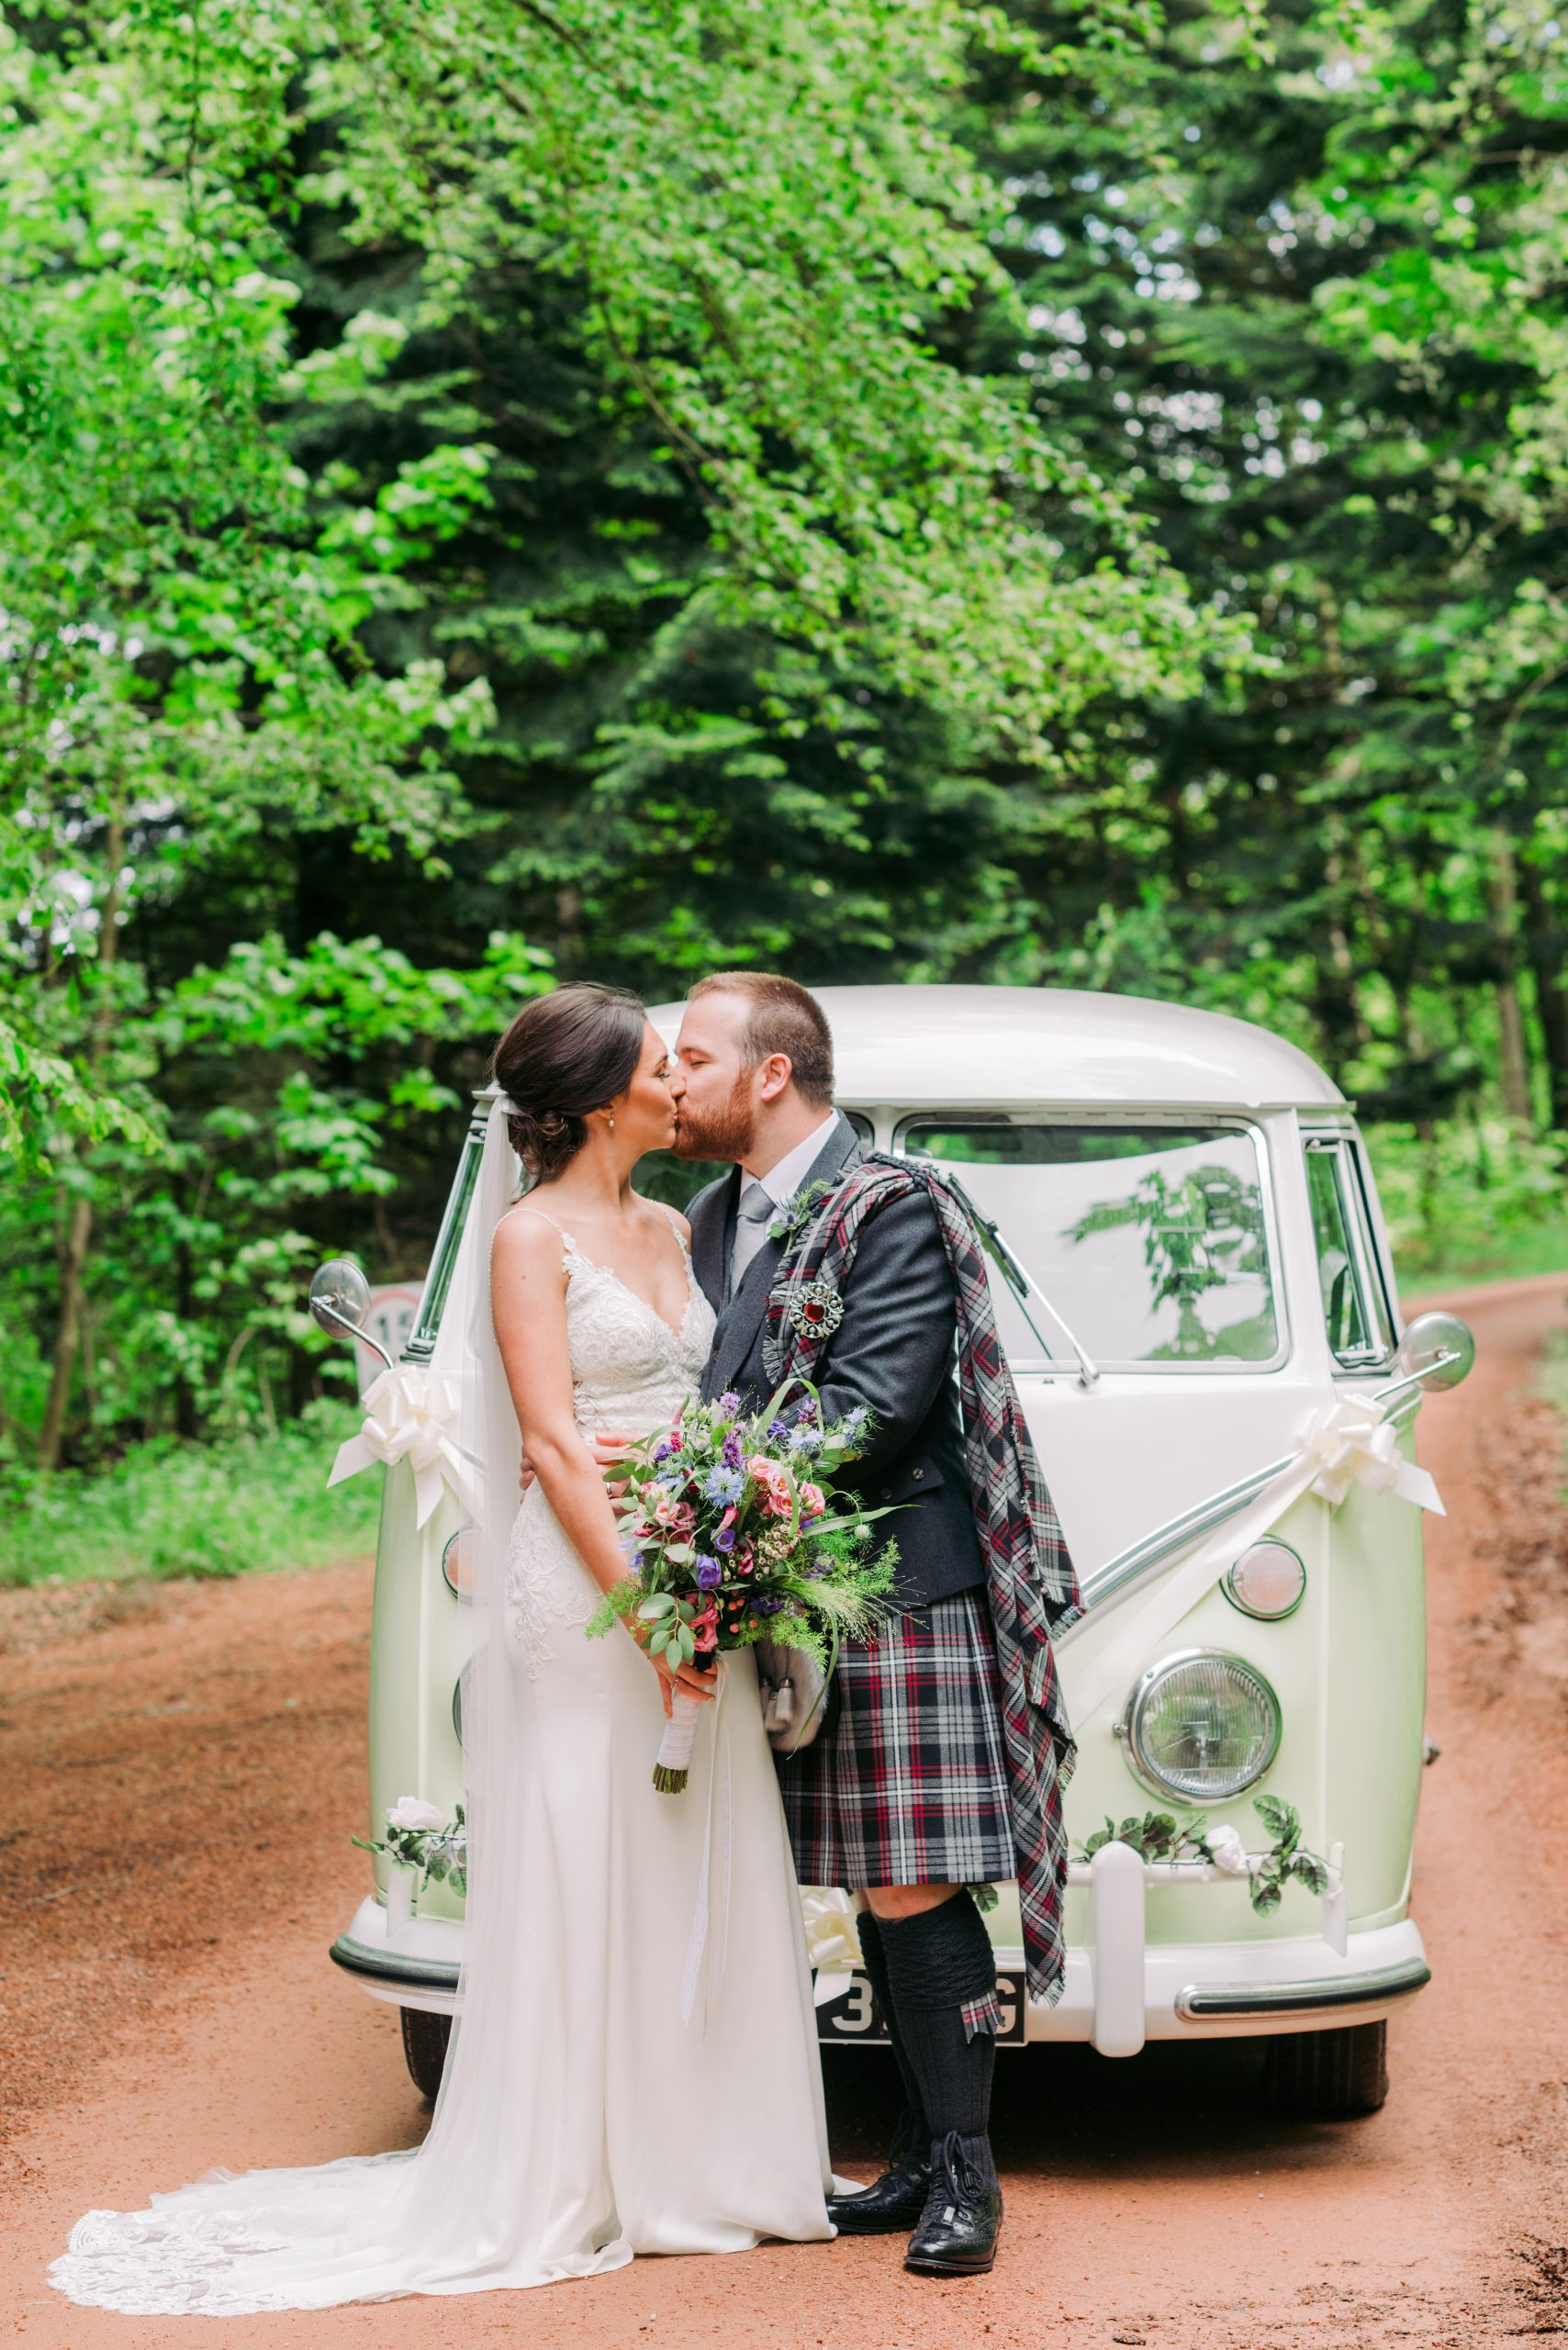 VW Wedding campervan hire Aberdeenshire Bridal transport camper